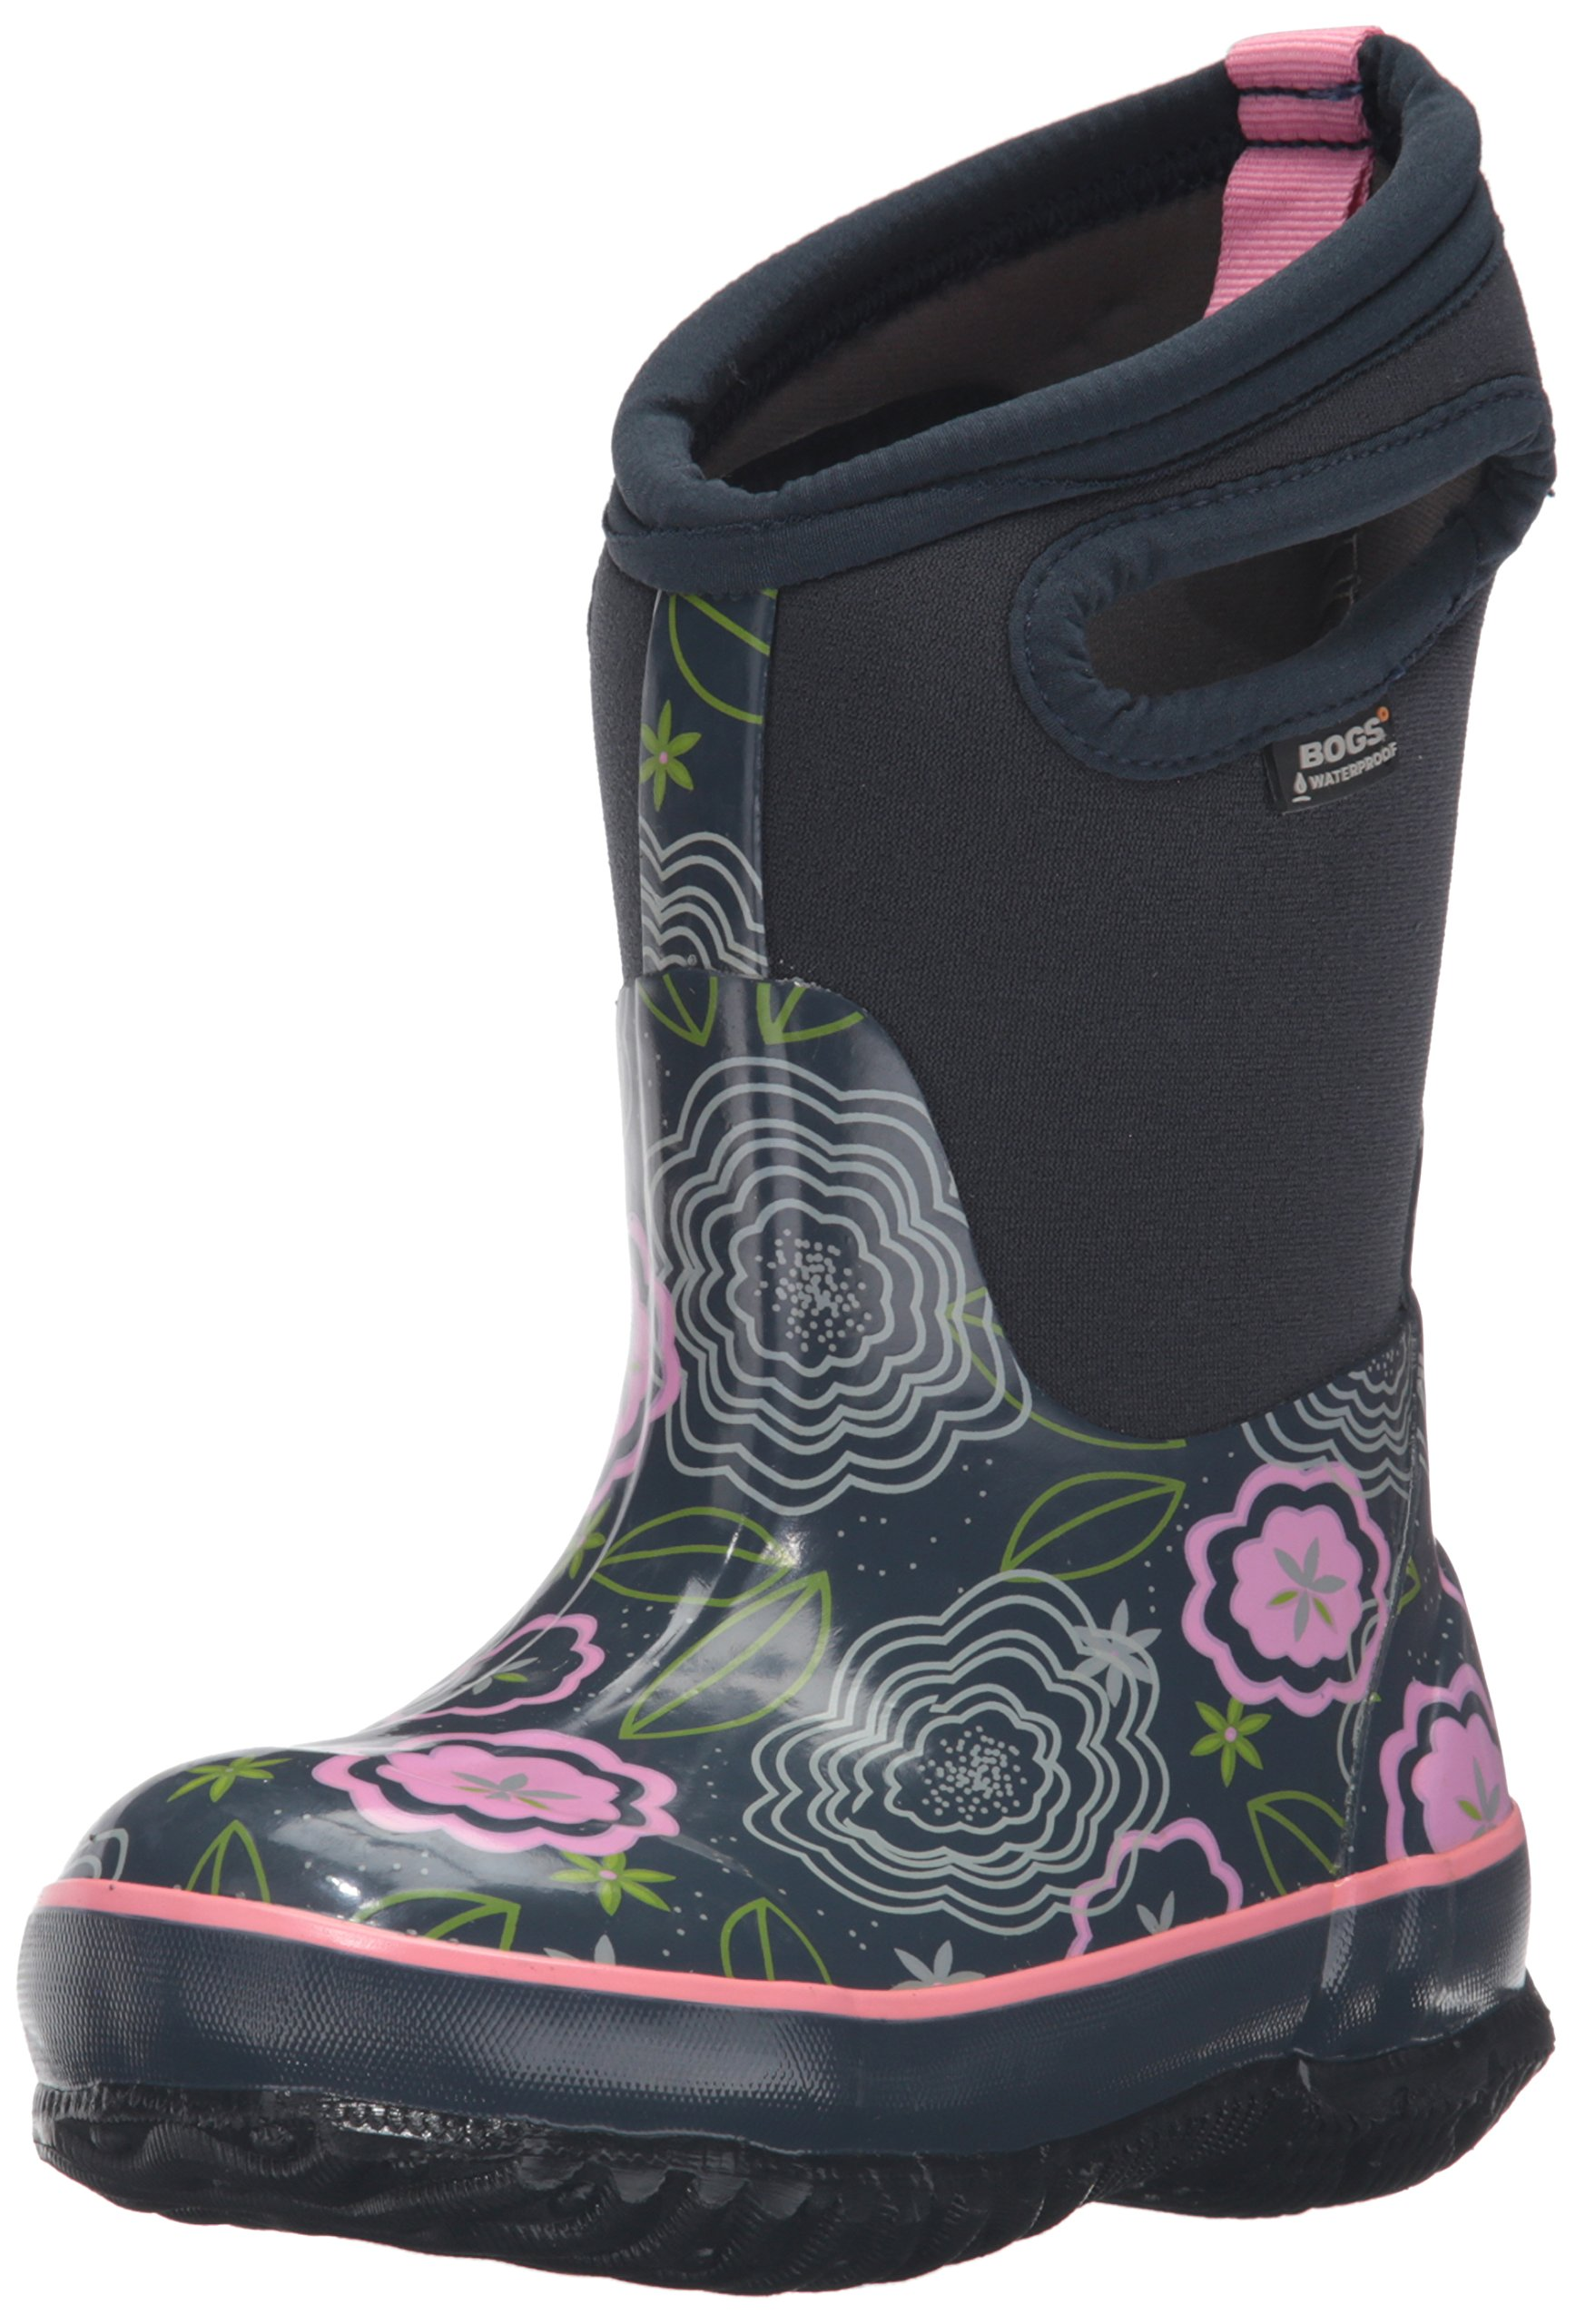 Bogs Classic High Waterproof Insulated Rubber Neoprene Rain Boot Snow, Posey Print/Dark Blue/Multi, 3 M US Little Kid